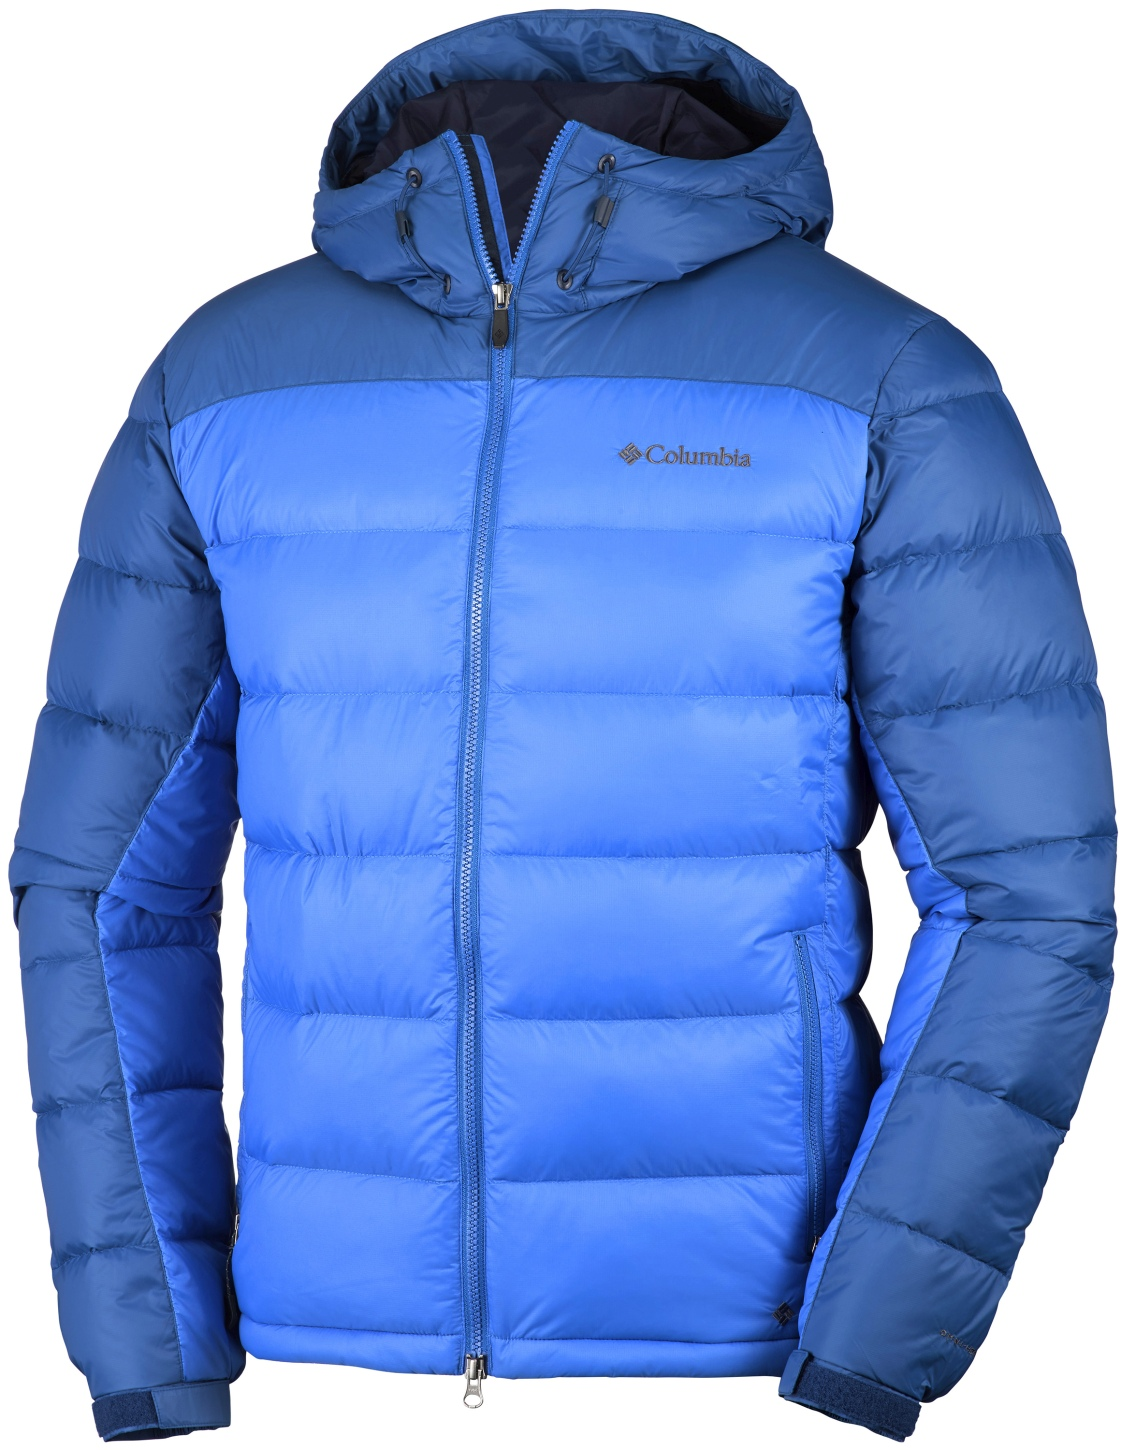 Columbia Men's Quantum Voyage Hooded Jacket Super Blue, Marine Blue-30